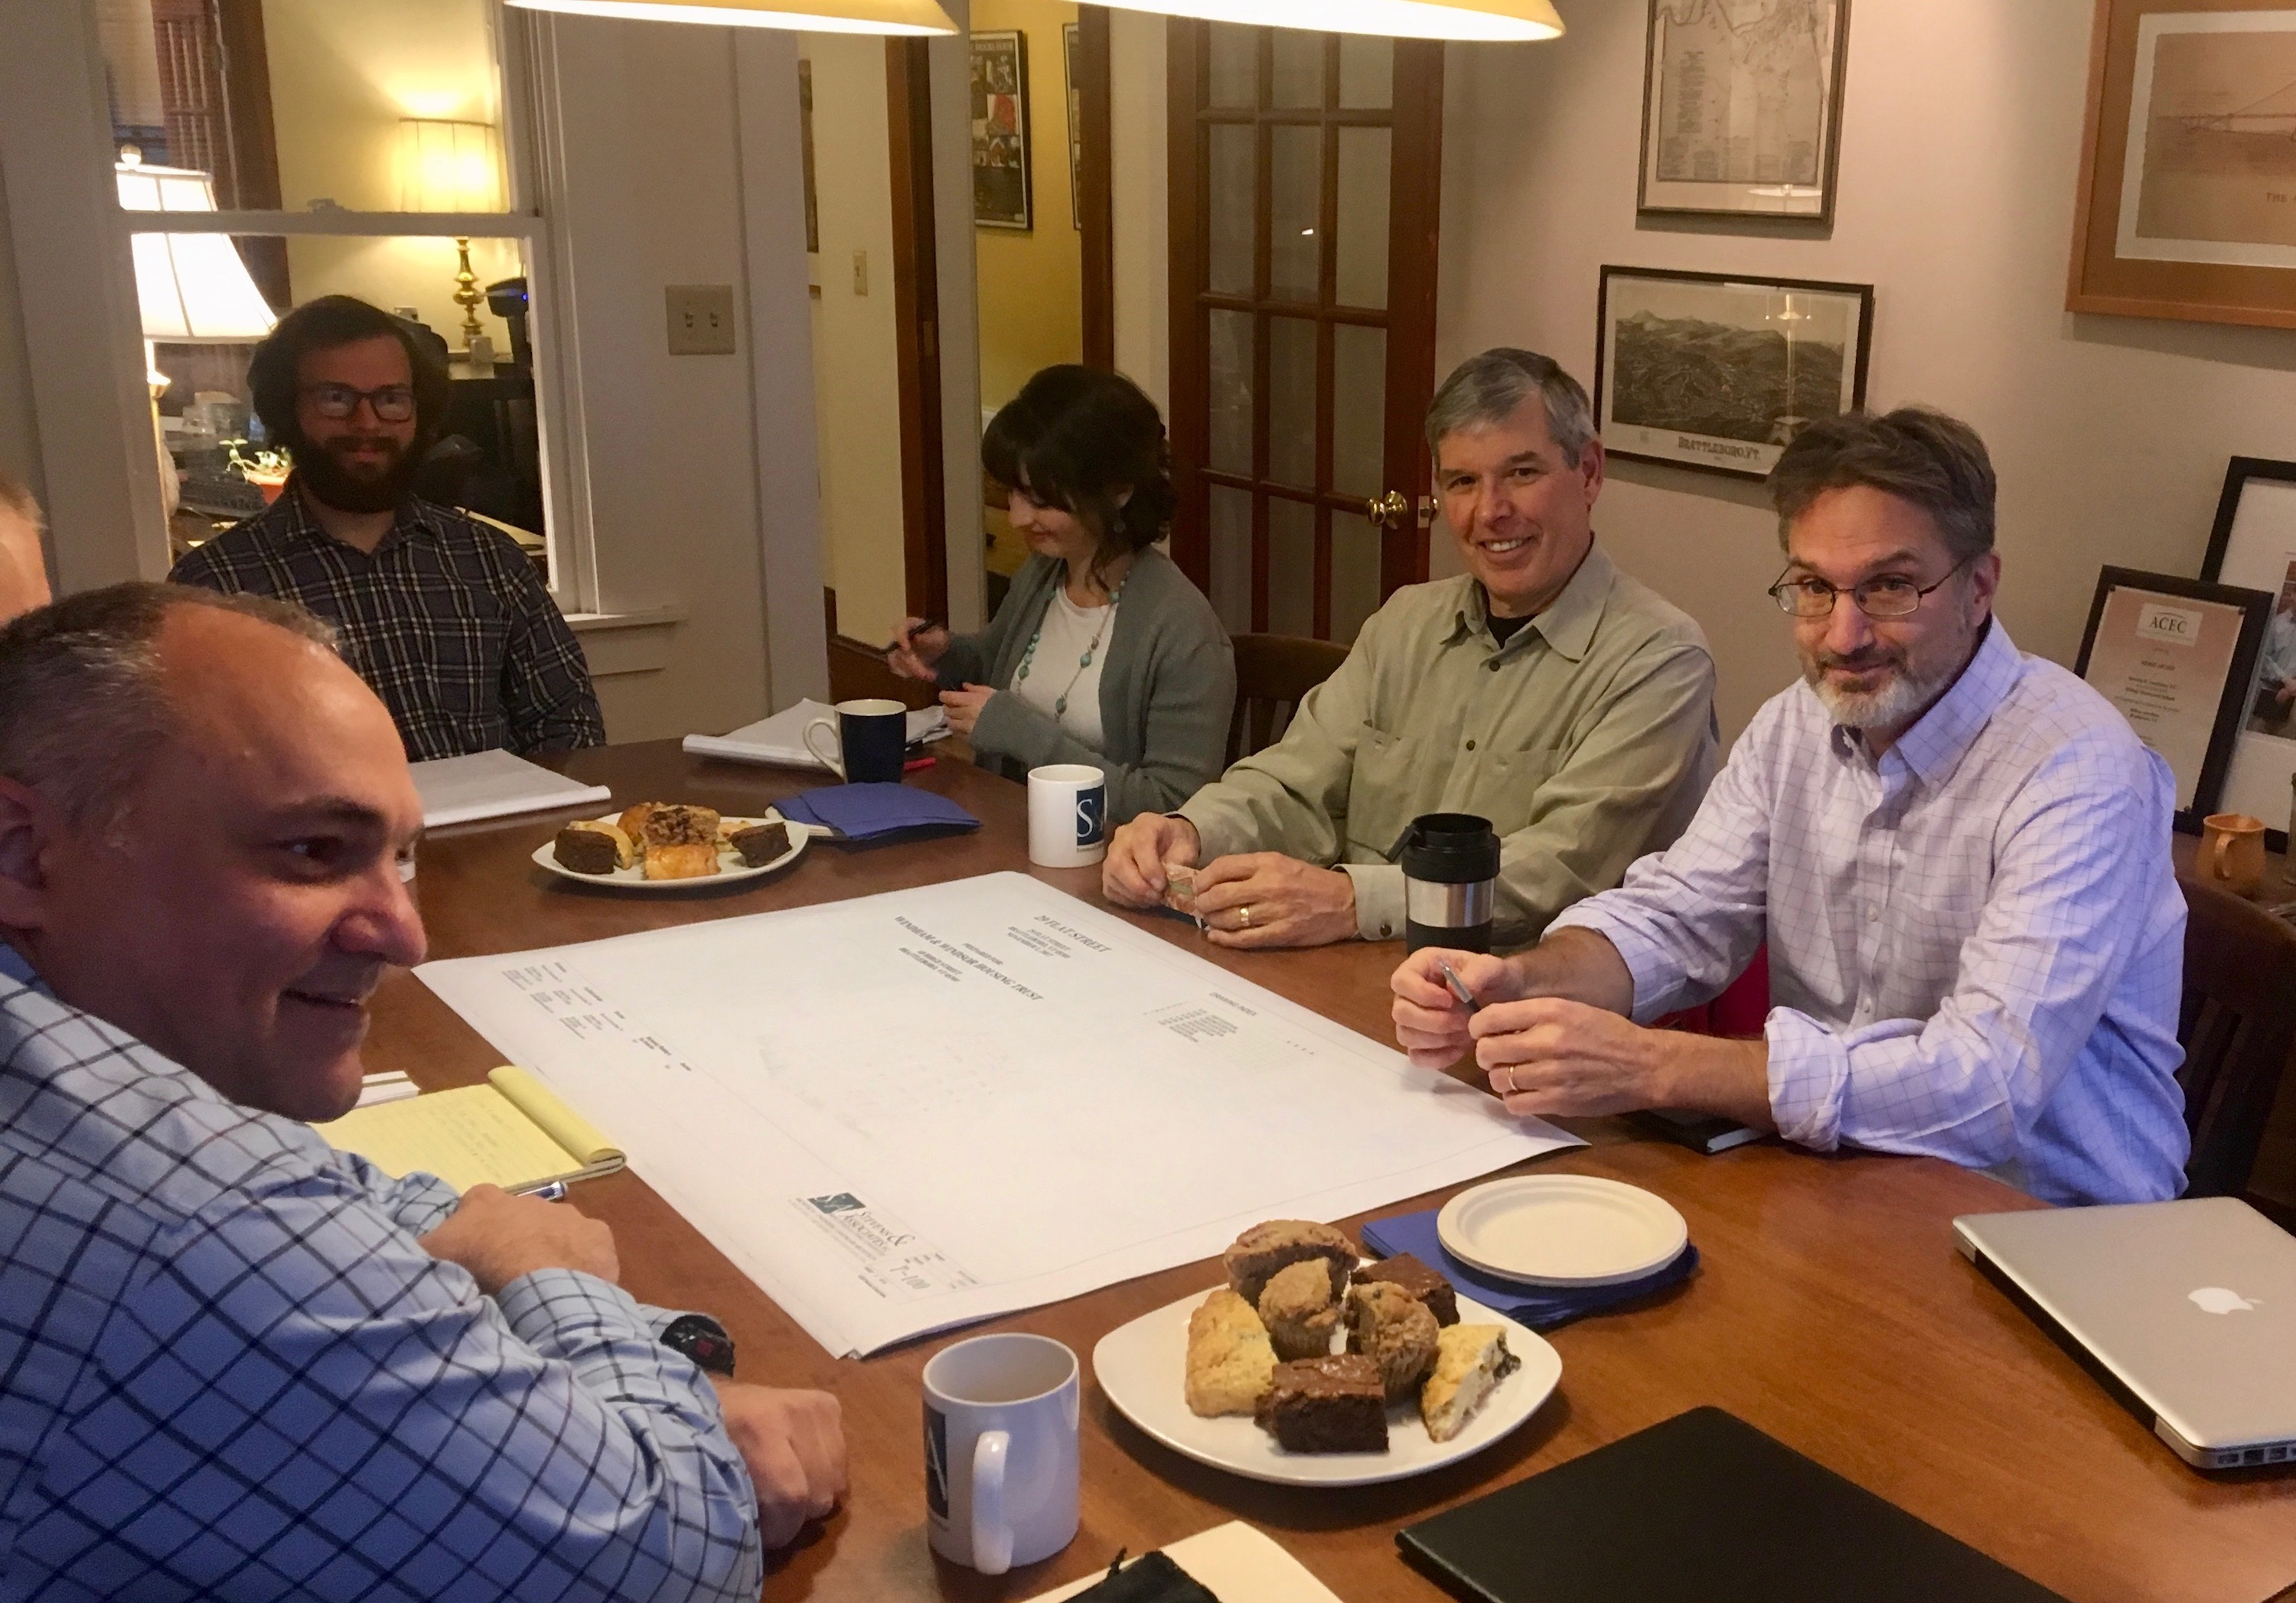 Participants At A Mass Timber Design Charrette Held At Stevens & Associates In Brattleboro, Vermont.